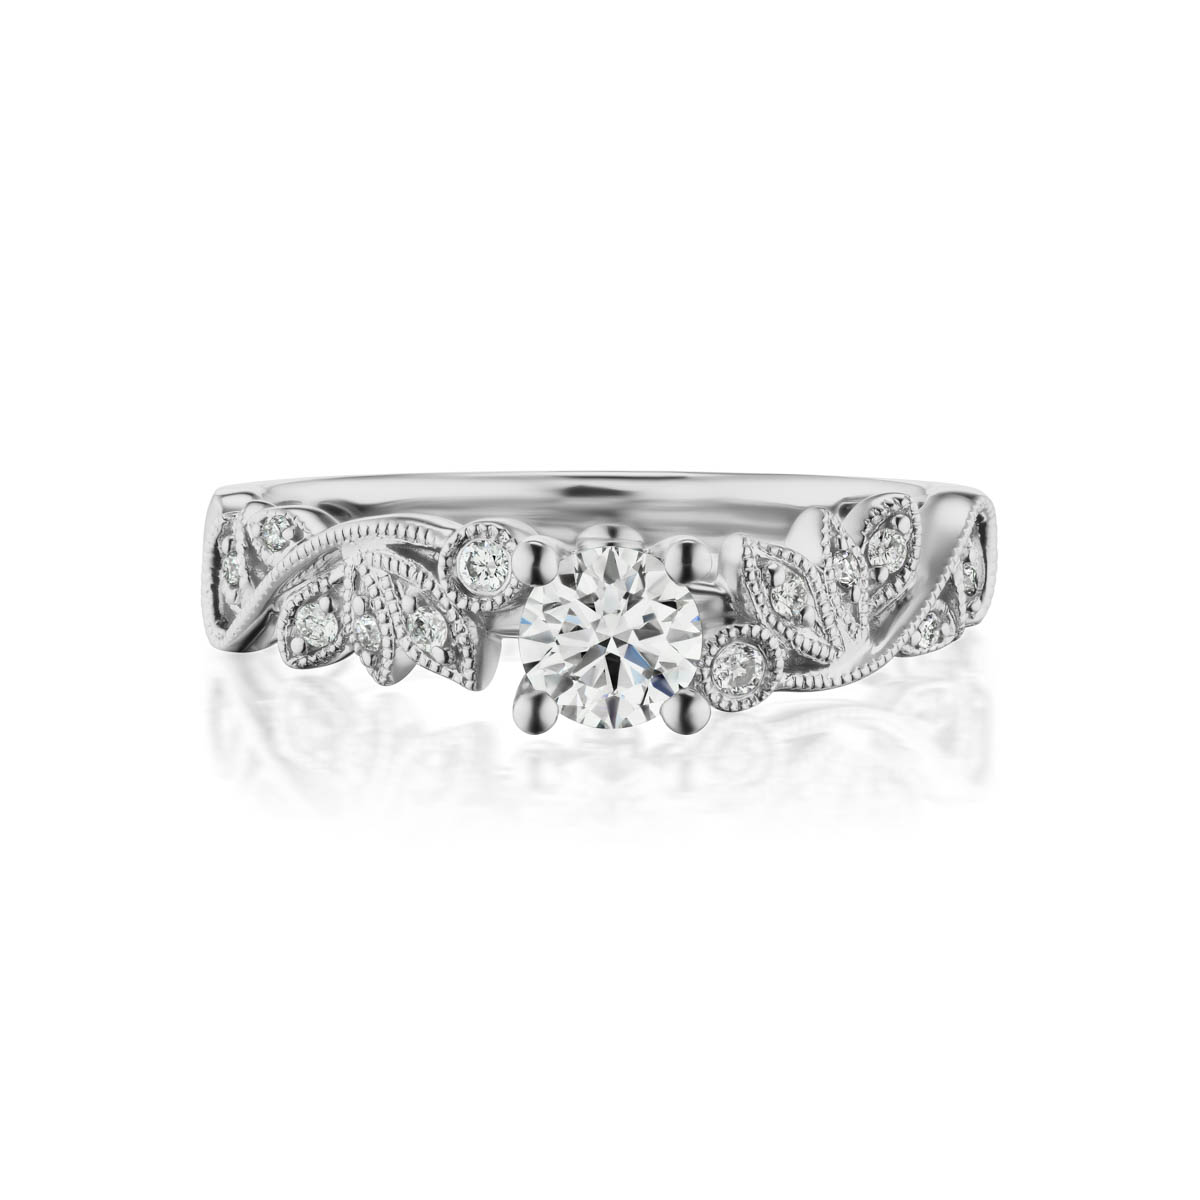 Affection preset engagement diamond ring, 14KT White Gold